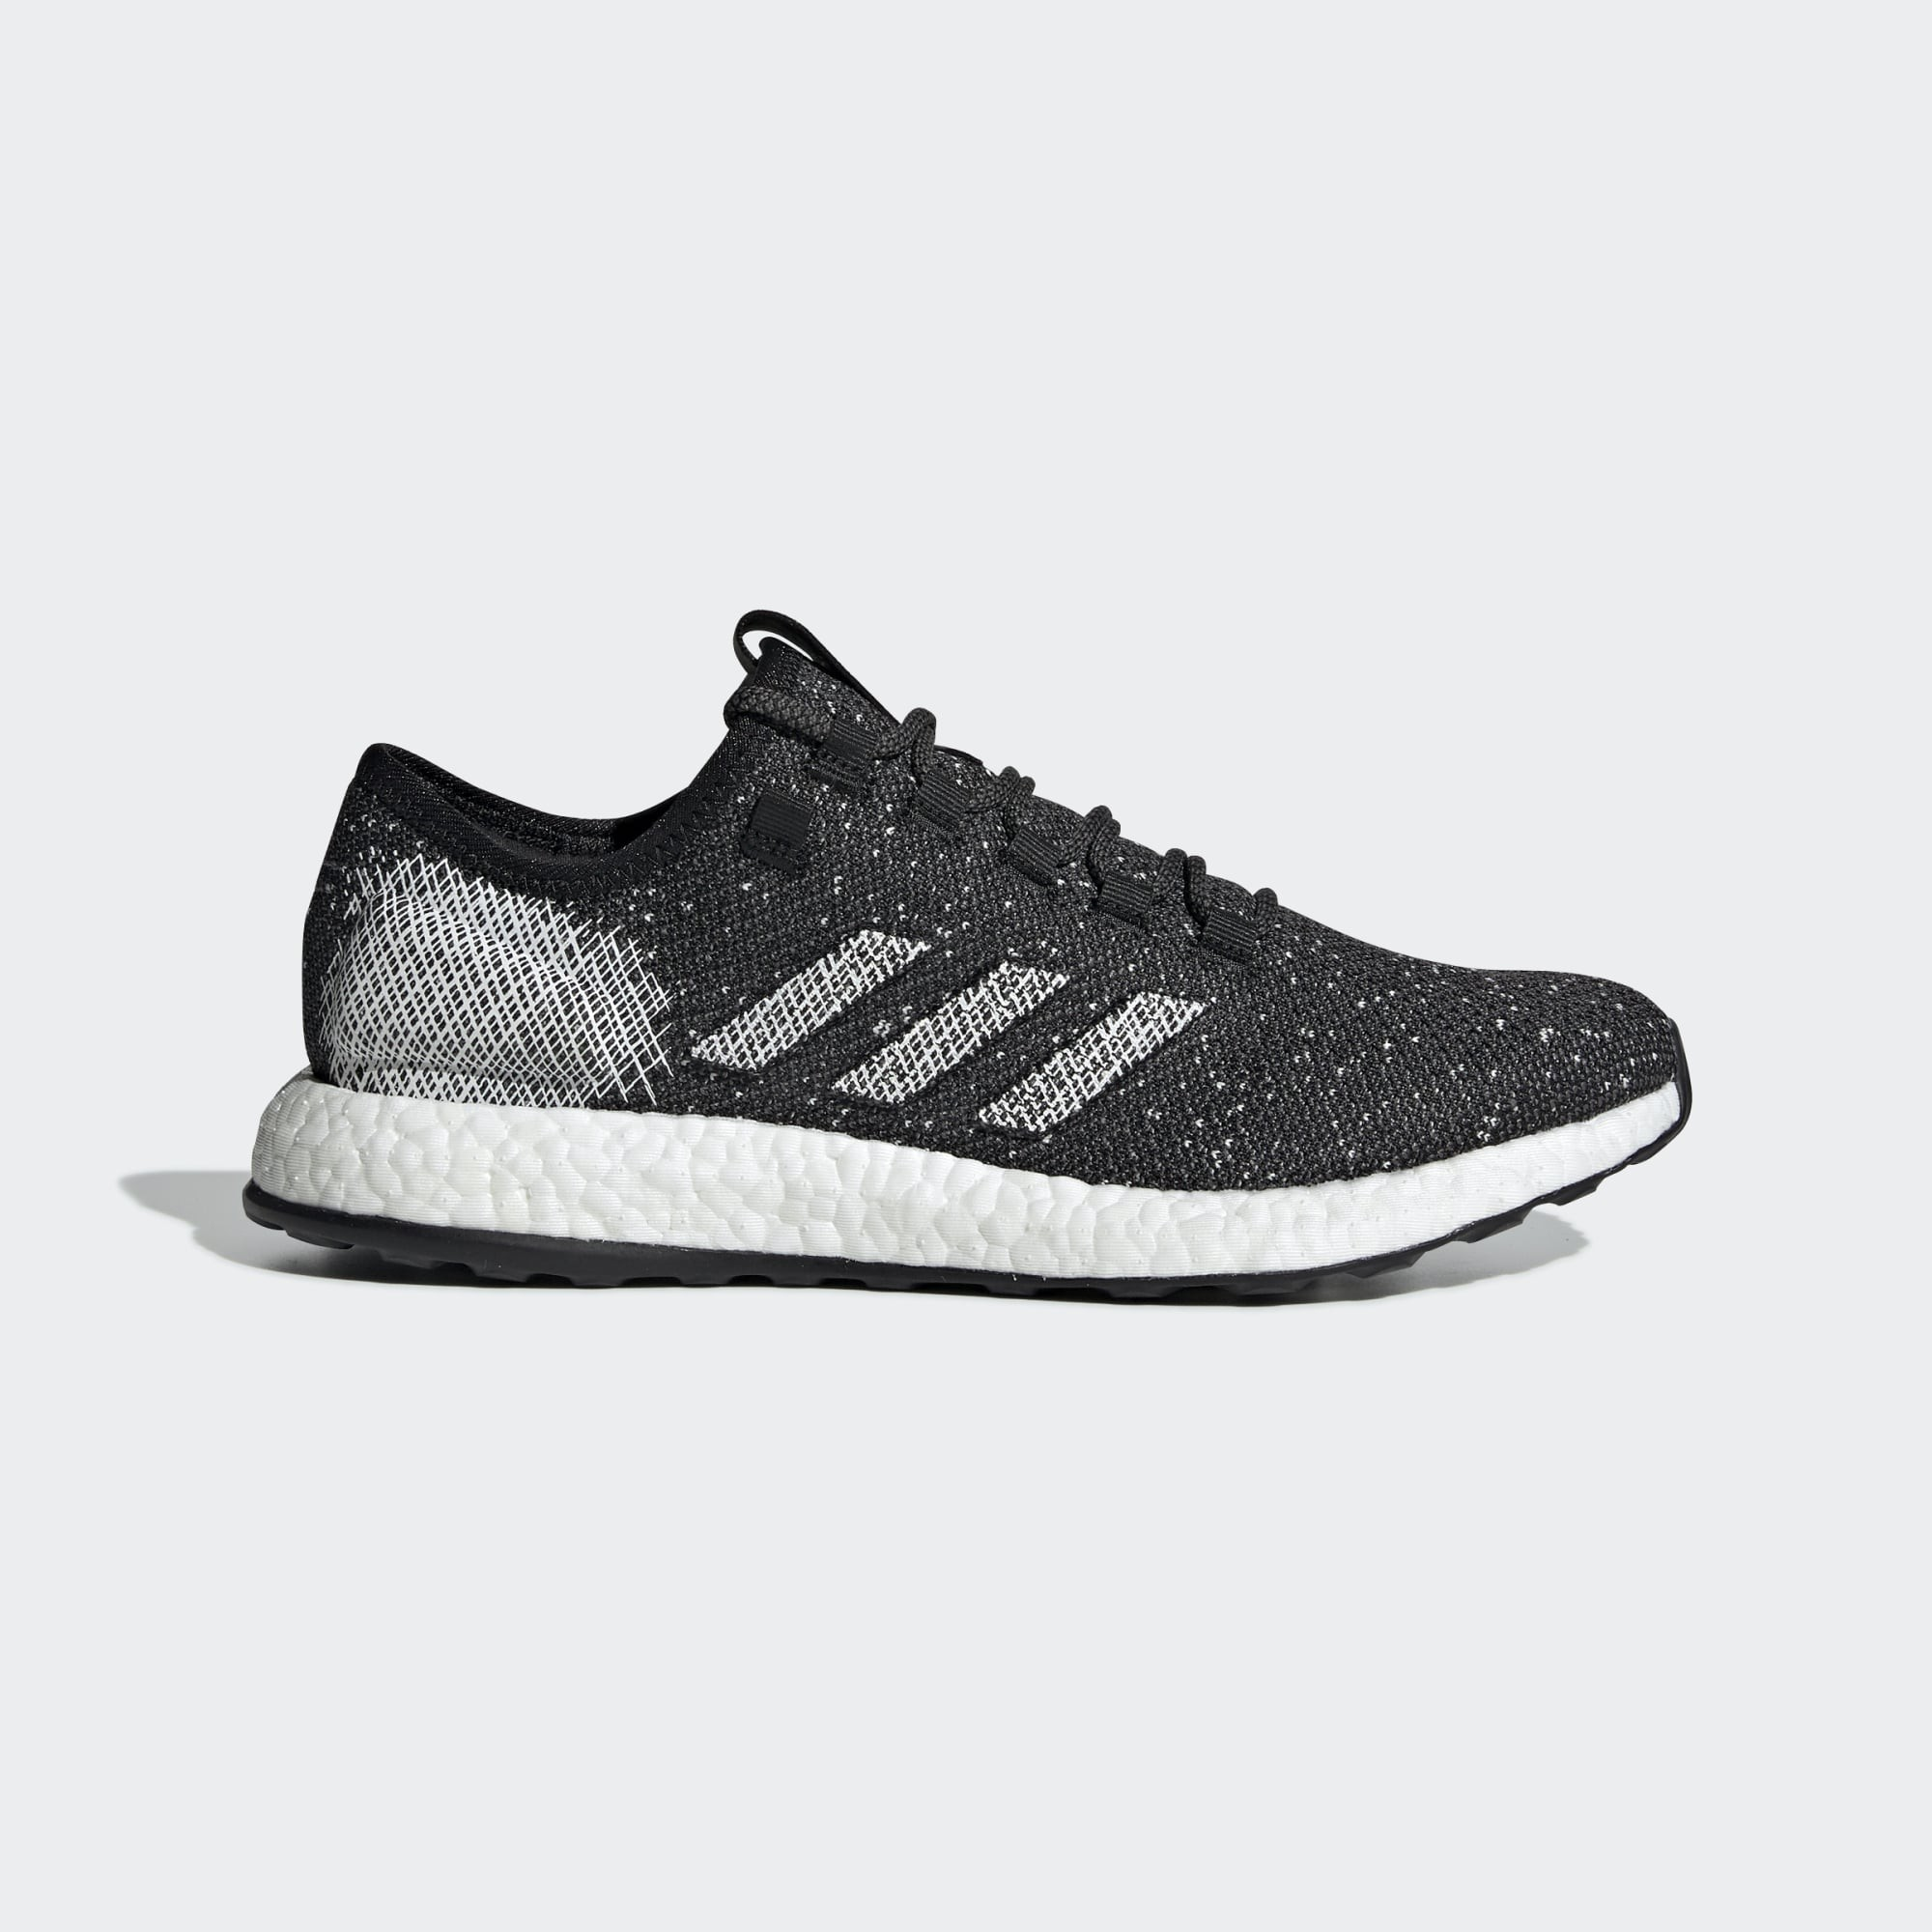 Adidas B37775 Pure Boost Running Shoes Black